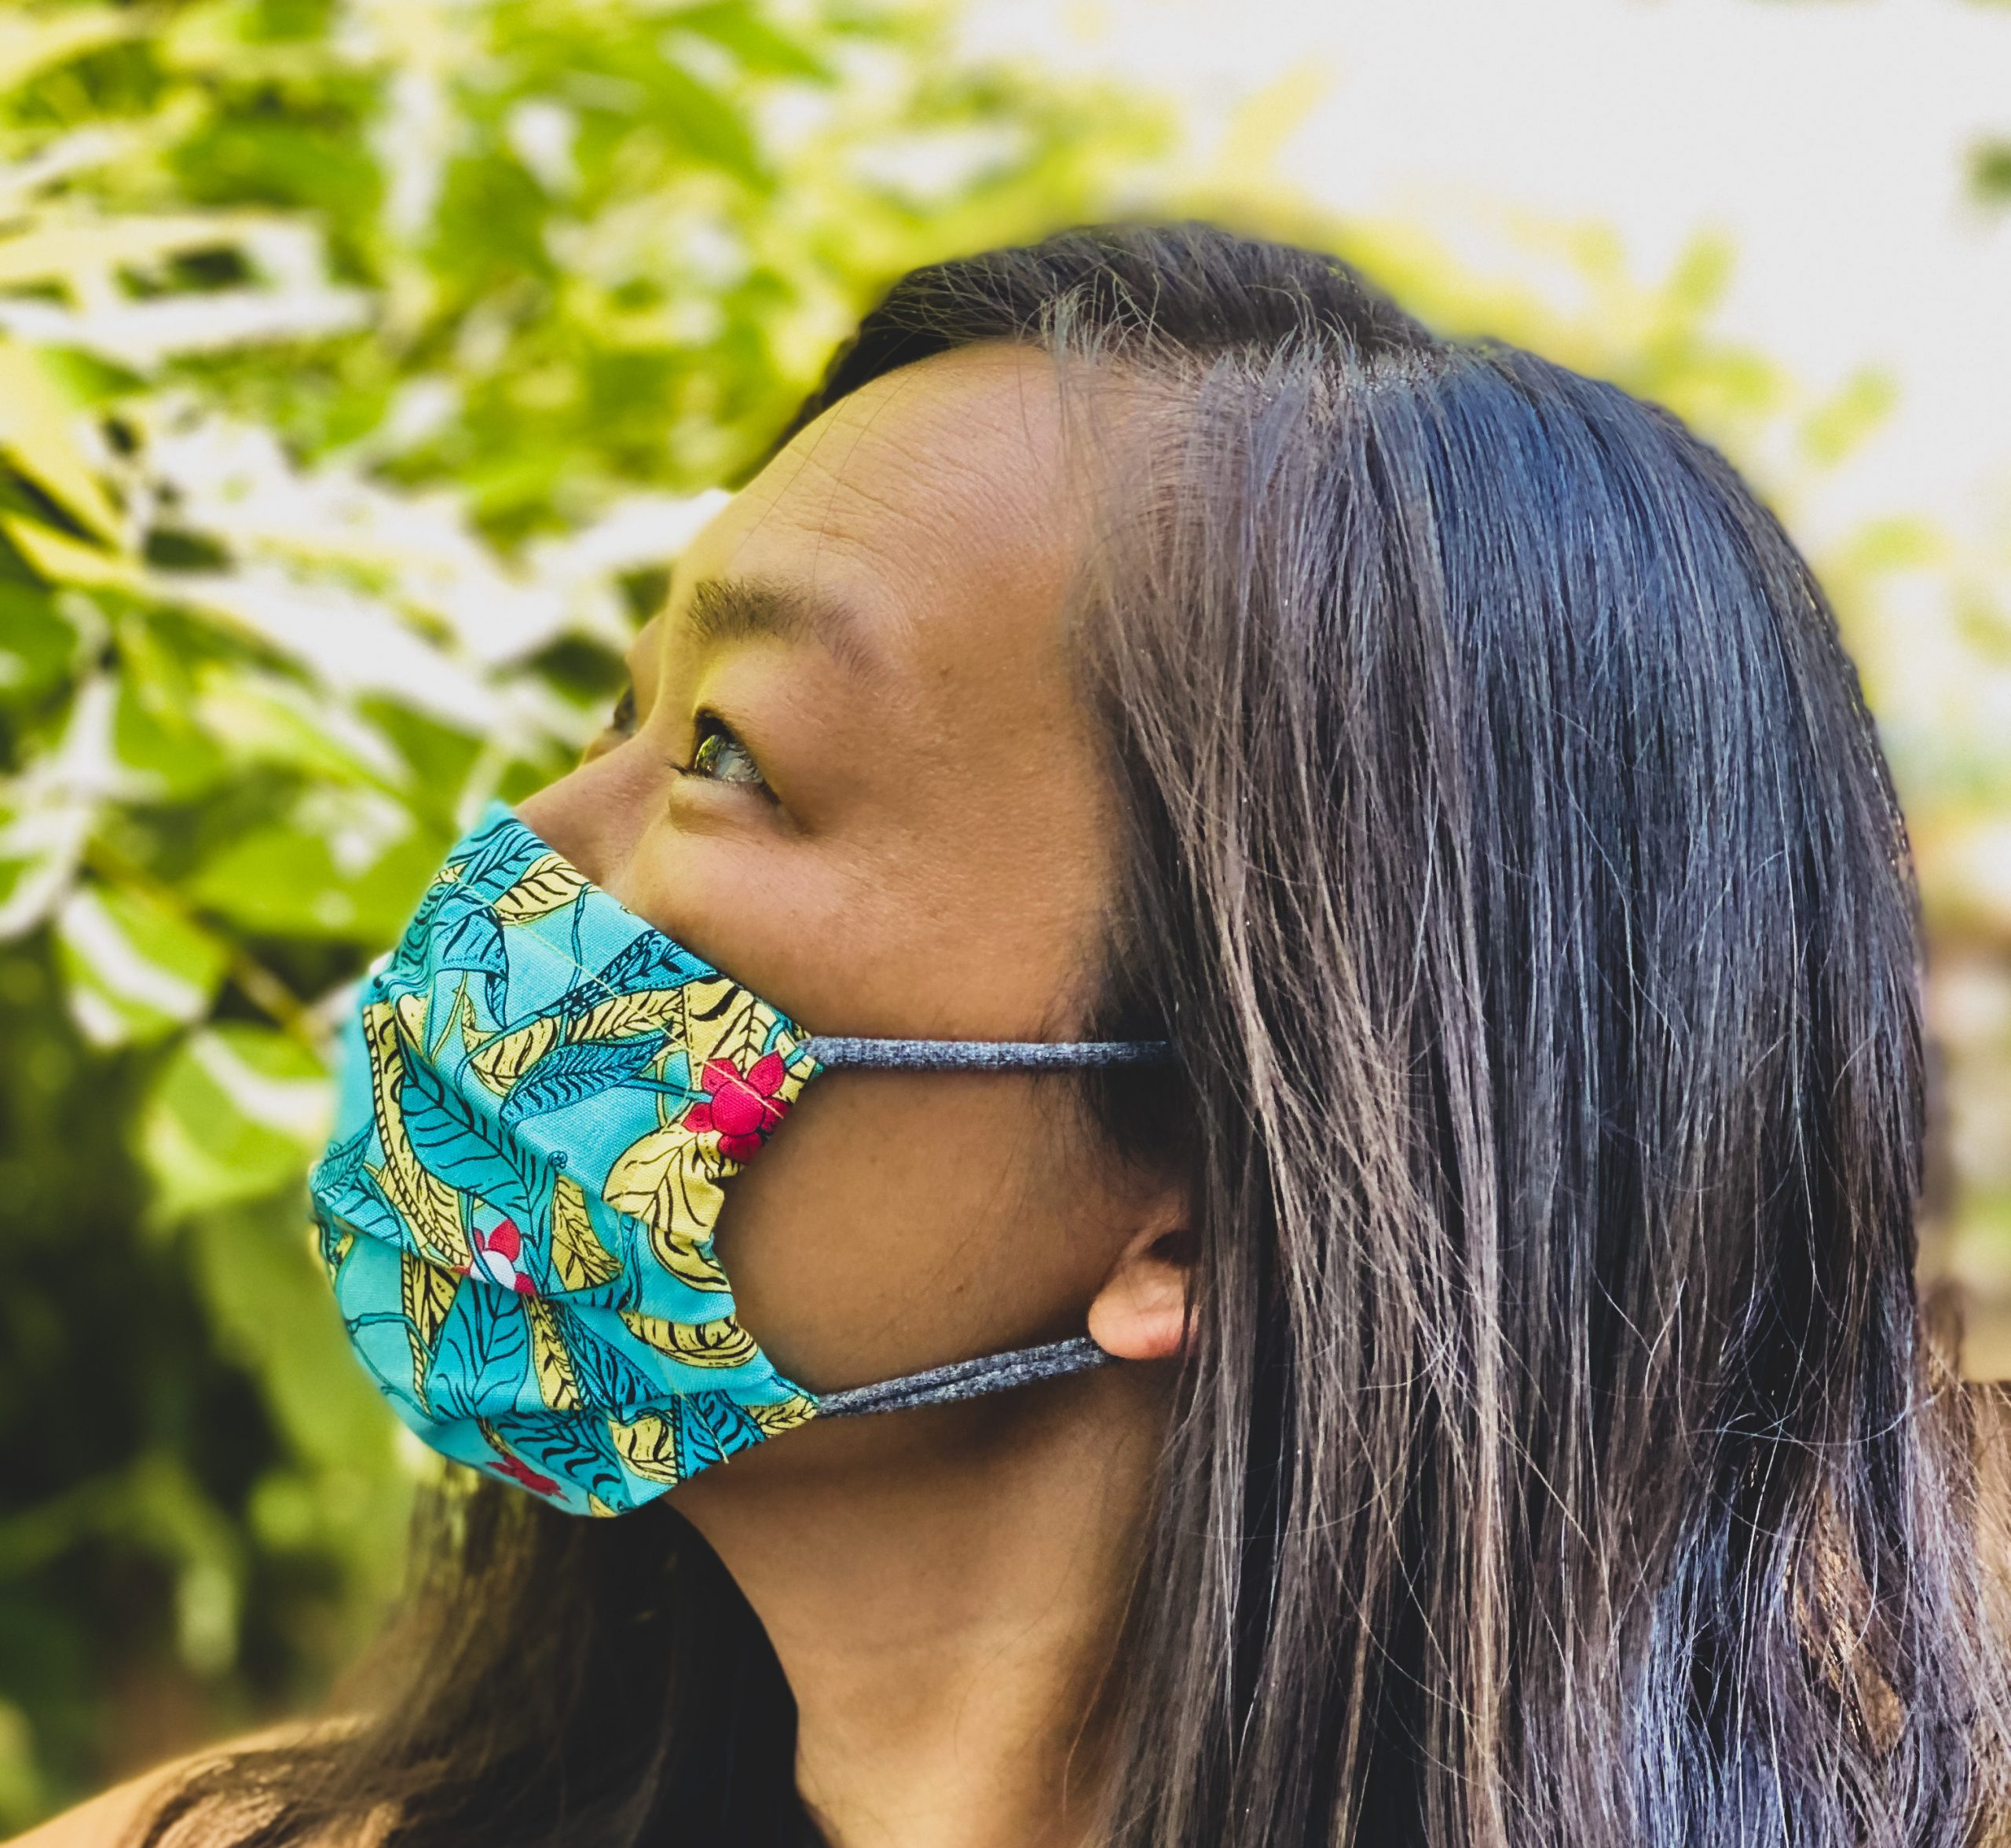 An Asian American woman poses for a profile photo wearing a colorful green mask.